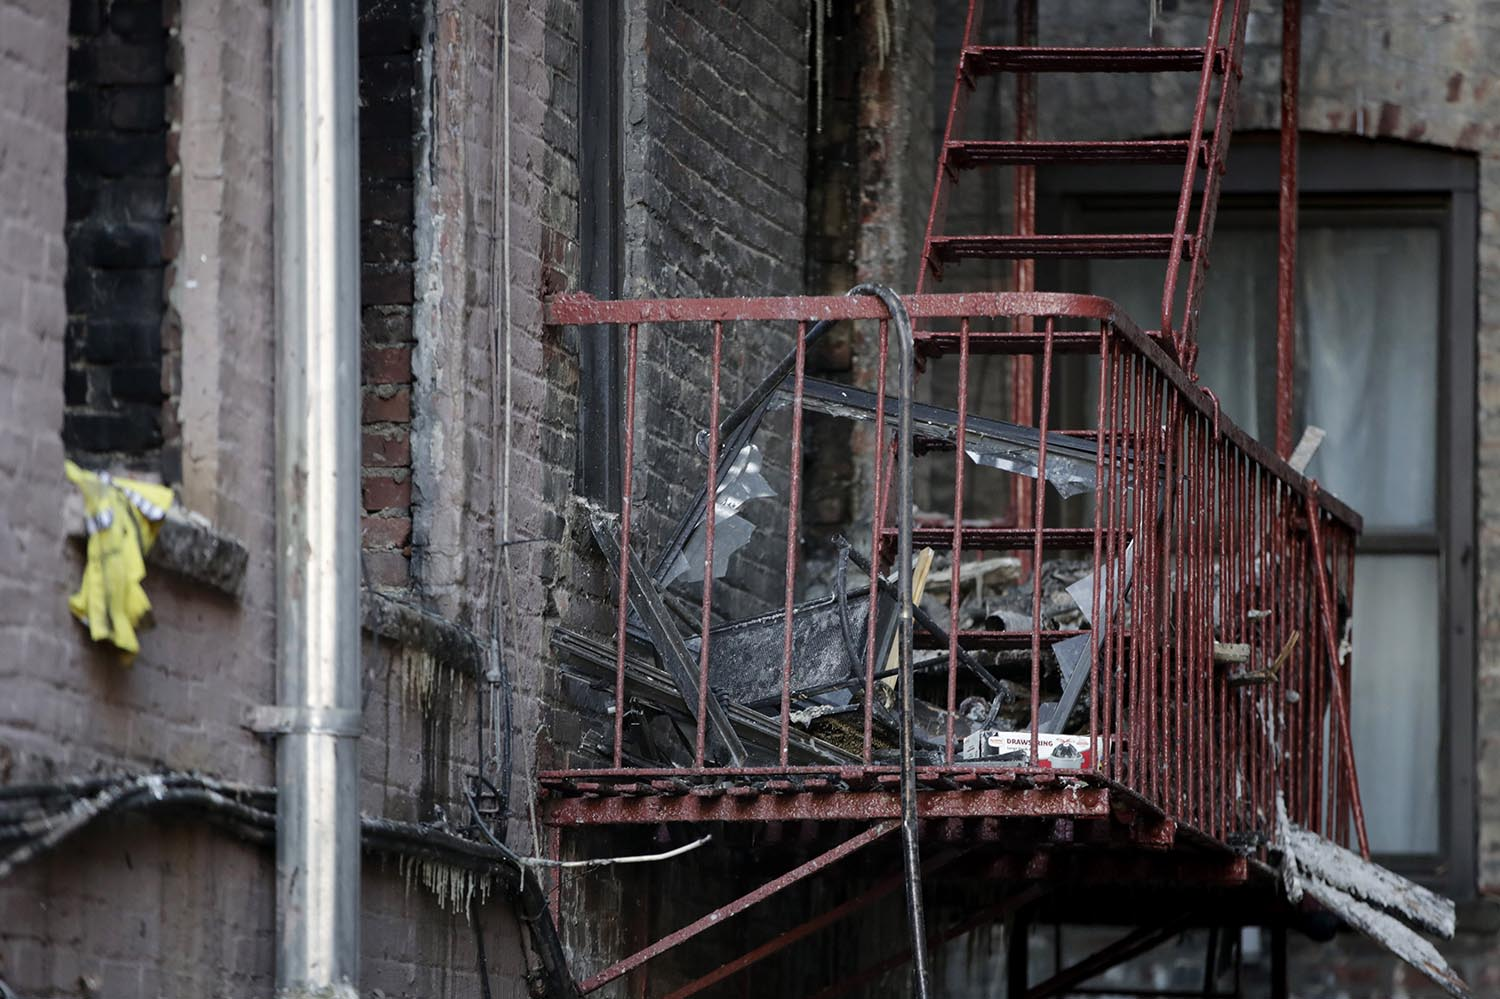 """<div class=""""meta image-caption""""><div class=""""origin-logo origin-image ap""""><span>AP</span></div><span class=""""caption-text"""">Charred items sit on the fire escape of an apartment building where more than 10 people died in a fire a day earlier in the Bronx borough of New York, Friday, Dec. 29, 2017. (AP Photo/Julio Cortez)</span></div>"""